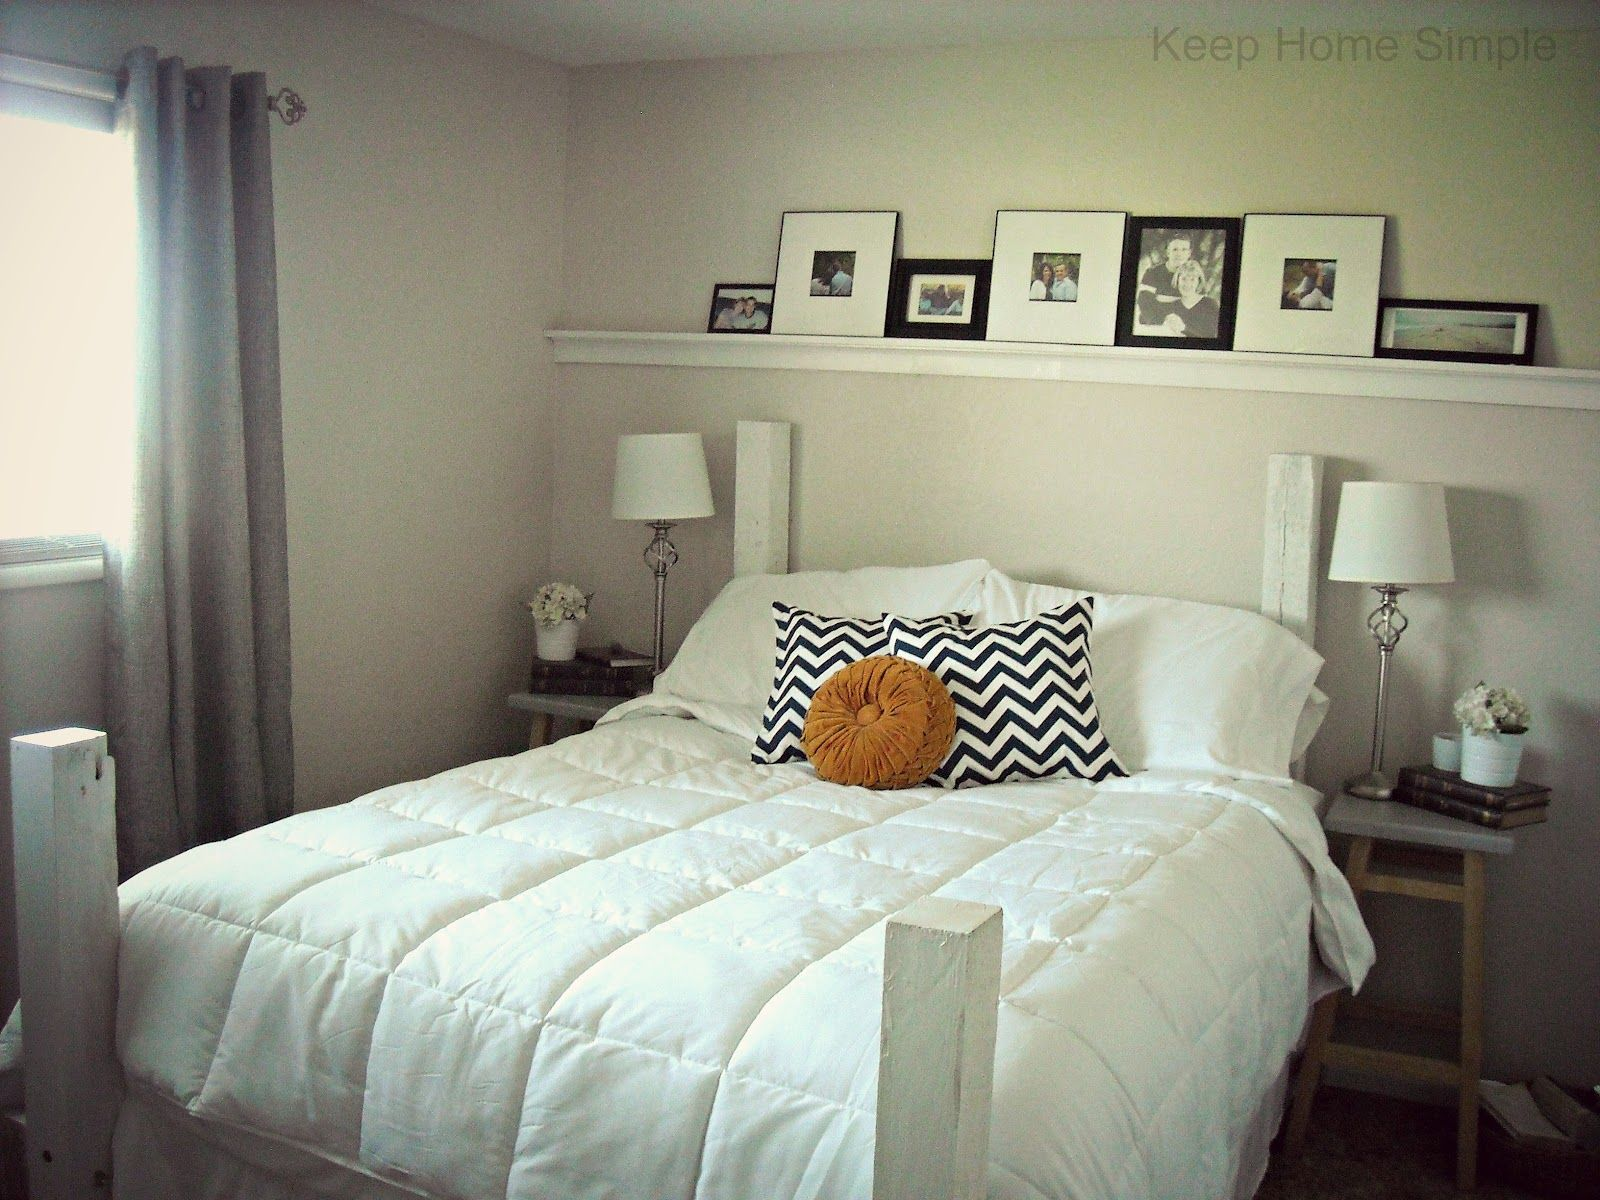 Master bedroom shelves above the bed  Keep Home Simple Redecorating Our Master bedroom on a Small Budget